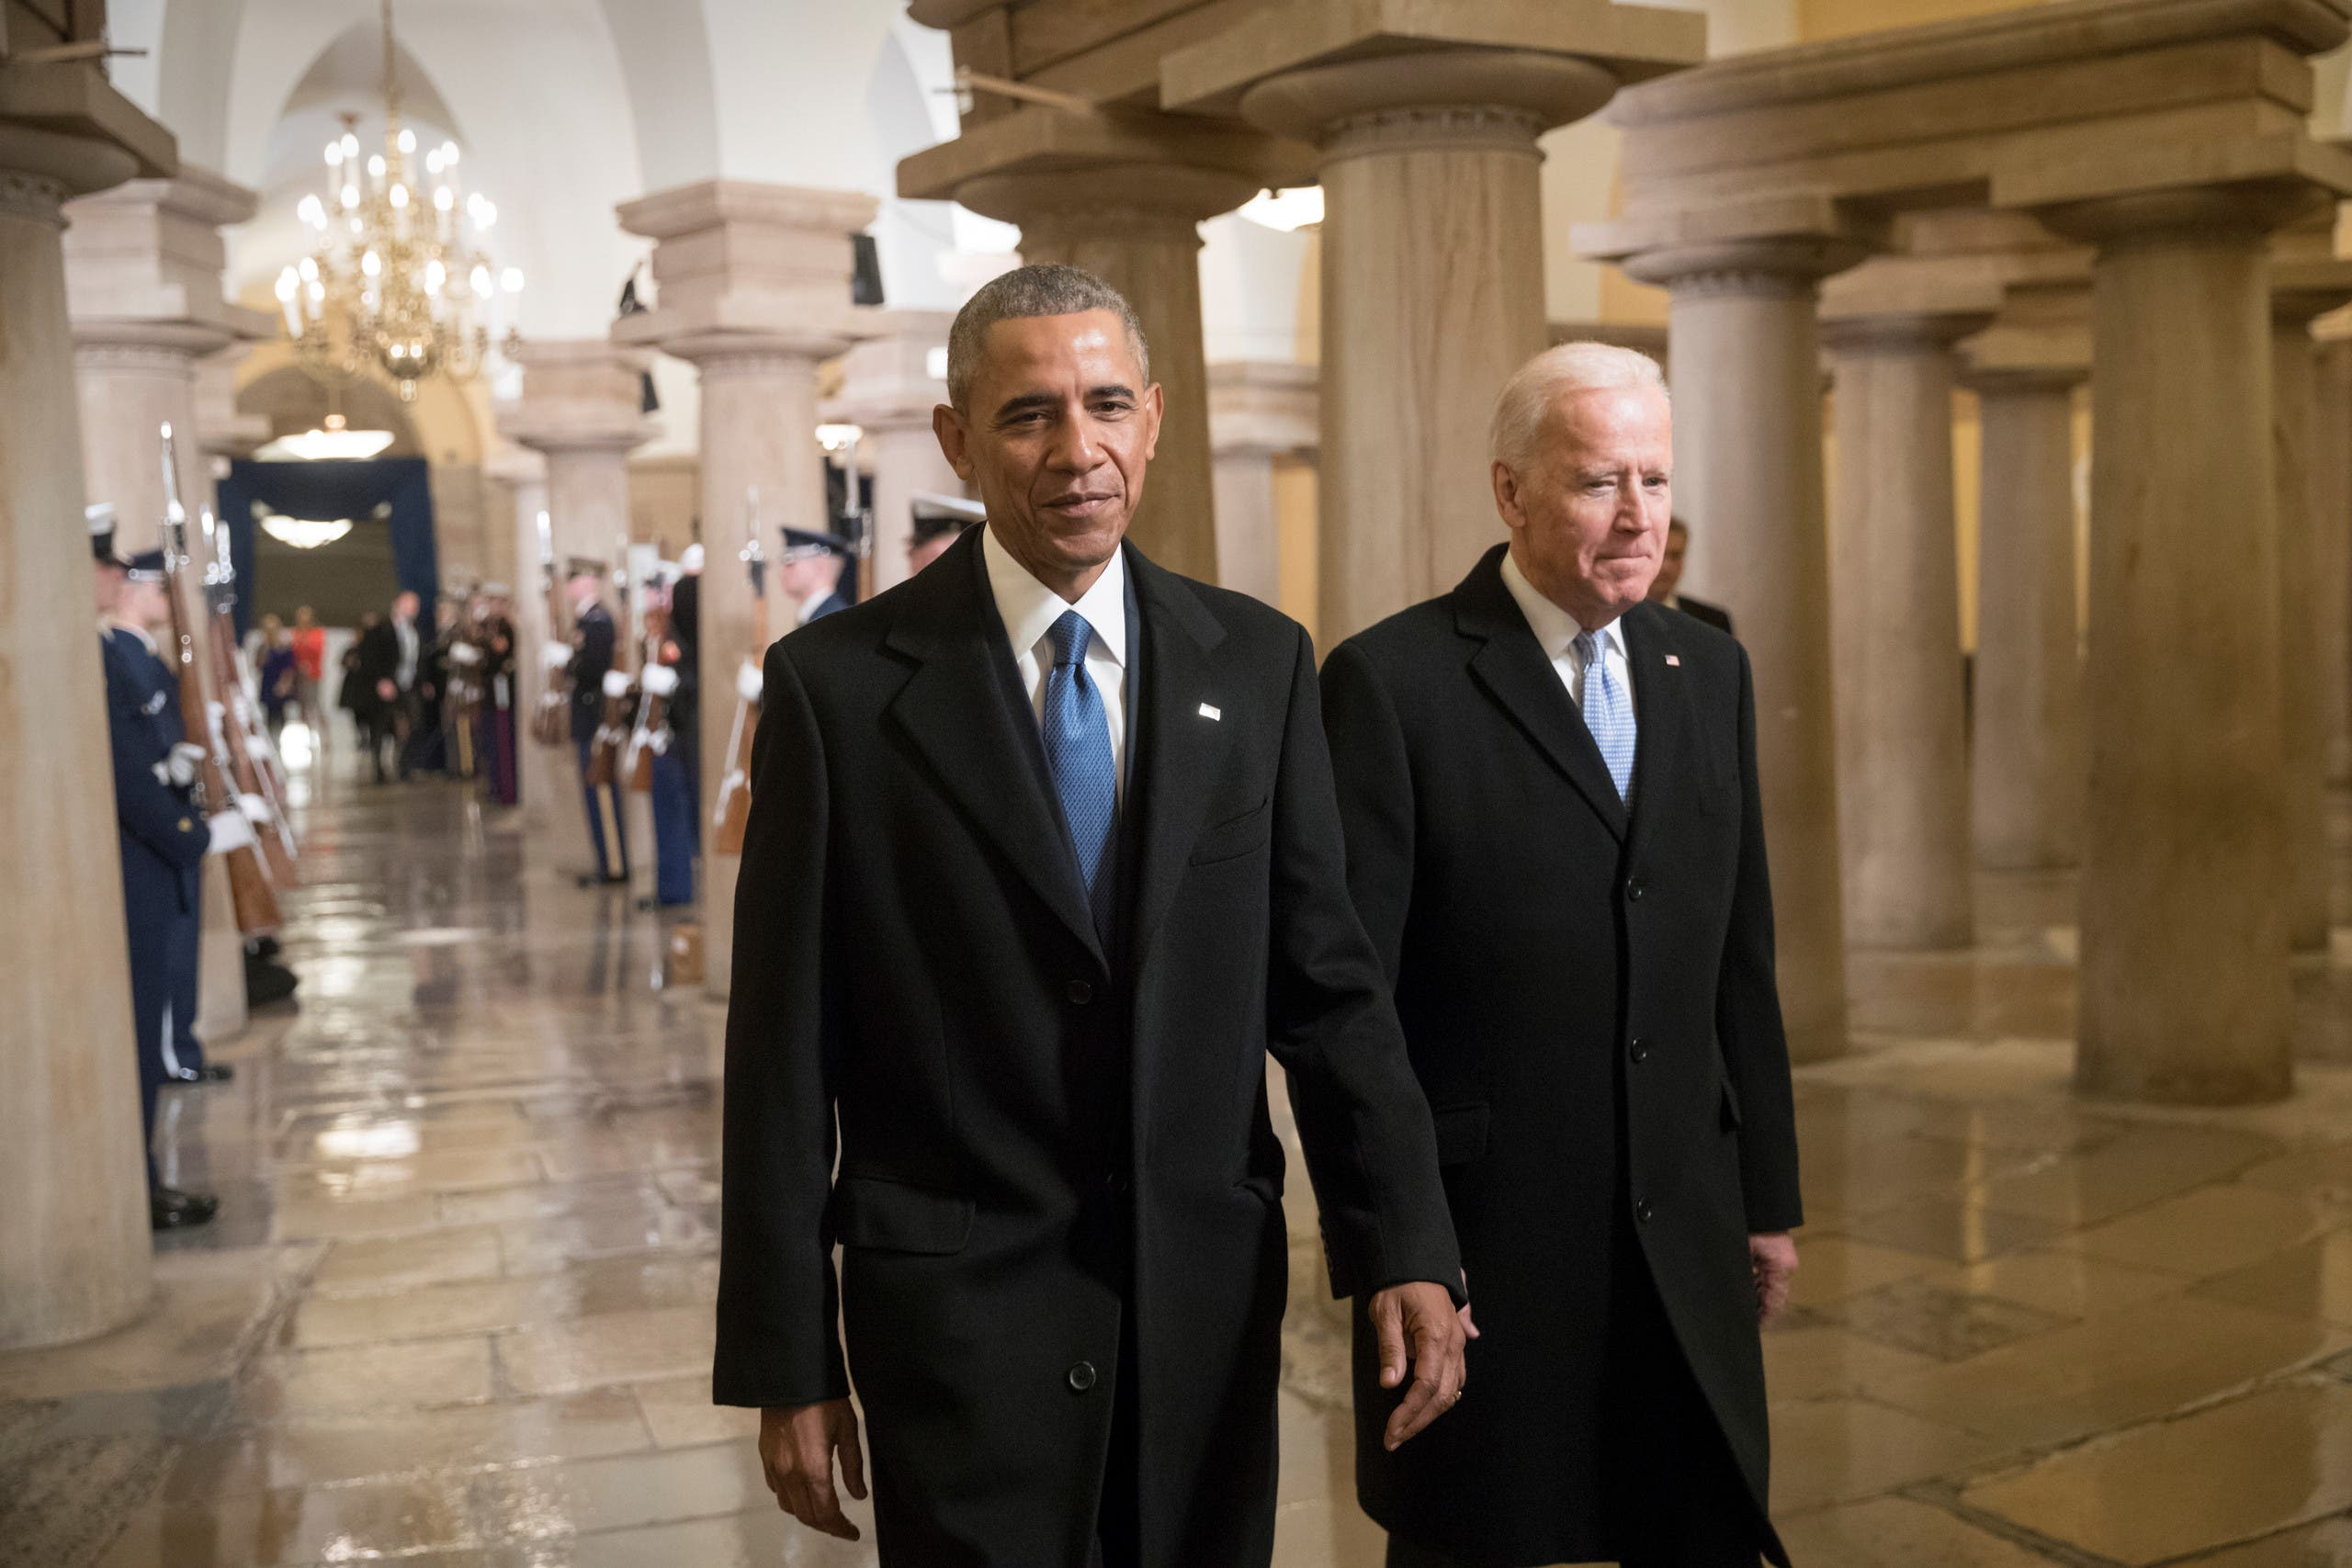 Then-President Barack Obama and Vice President Joe Biden walk through the Crypt of the Capitol for Donald Trump's inauguration ceremony, in Washington, Friday, Jan. 20, 2017. (Reuters)